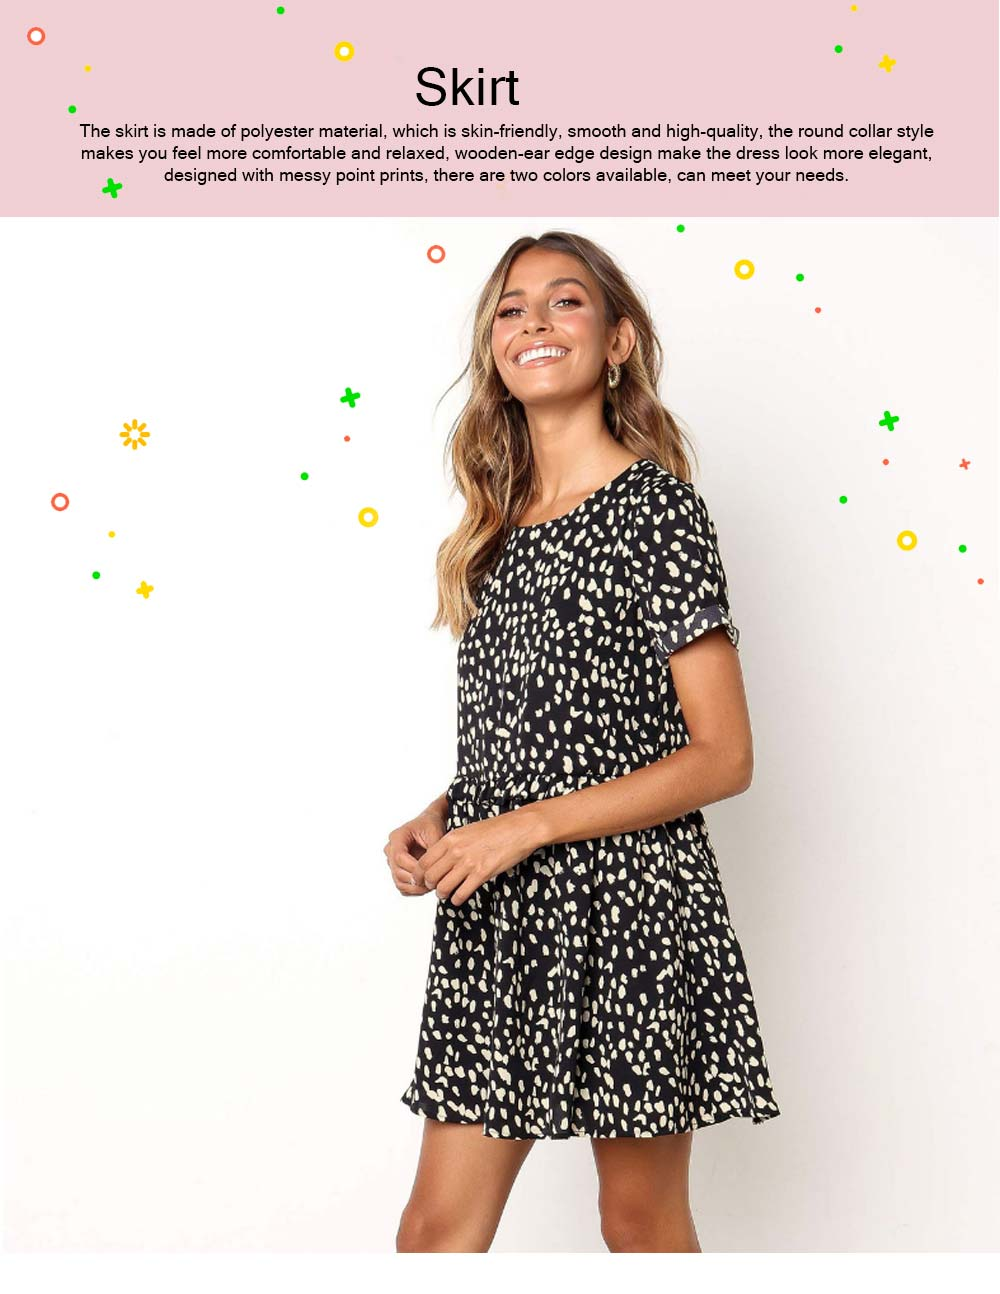 Polyester Material Lady Skirt, Soft One-piece Dress Round Collar Ruffle with Printing Kilt, Women One-piece Dress Summer 2019 0